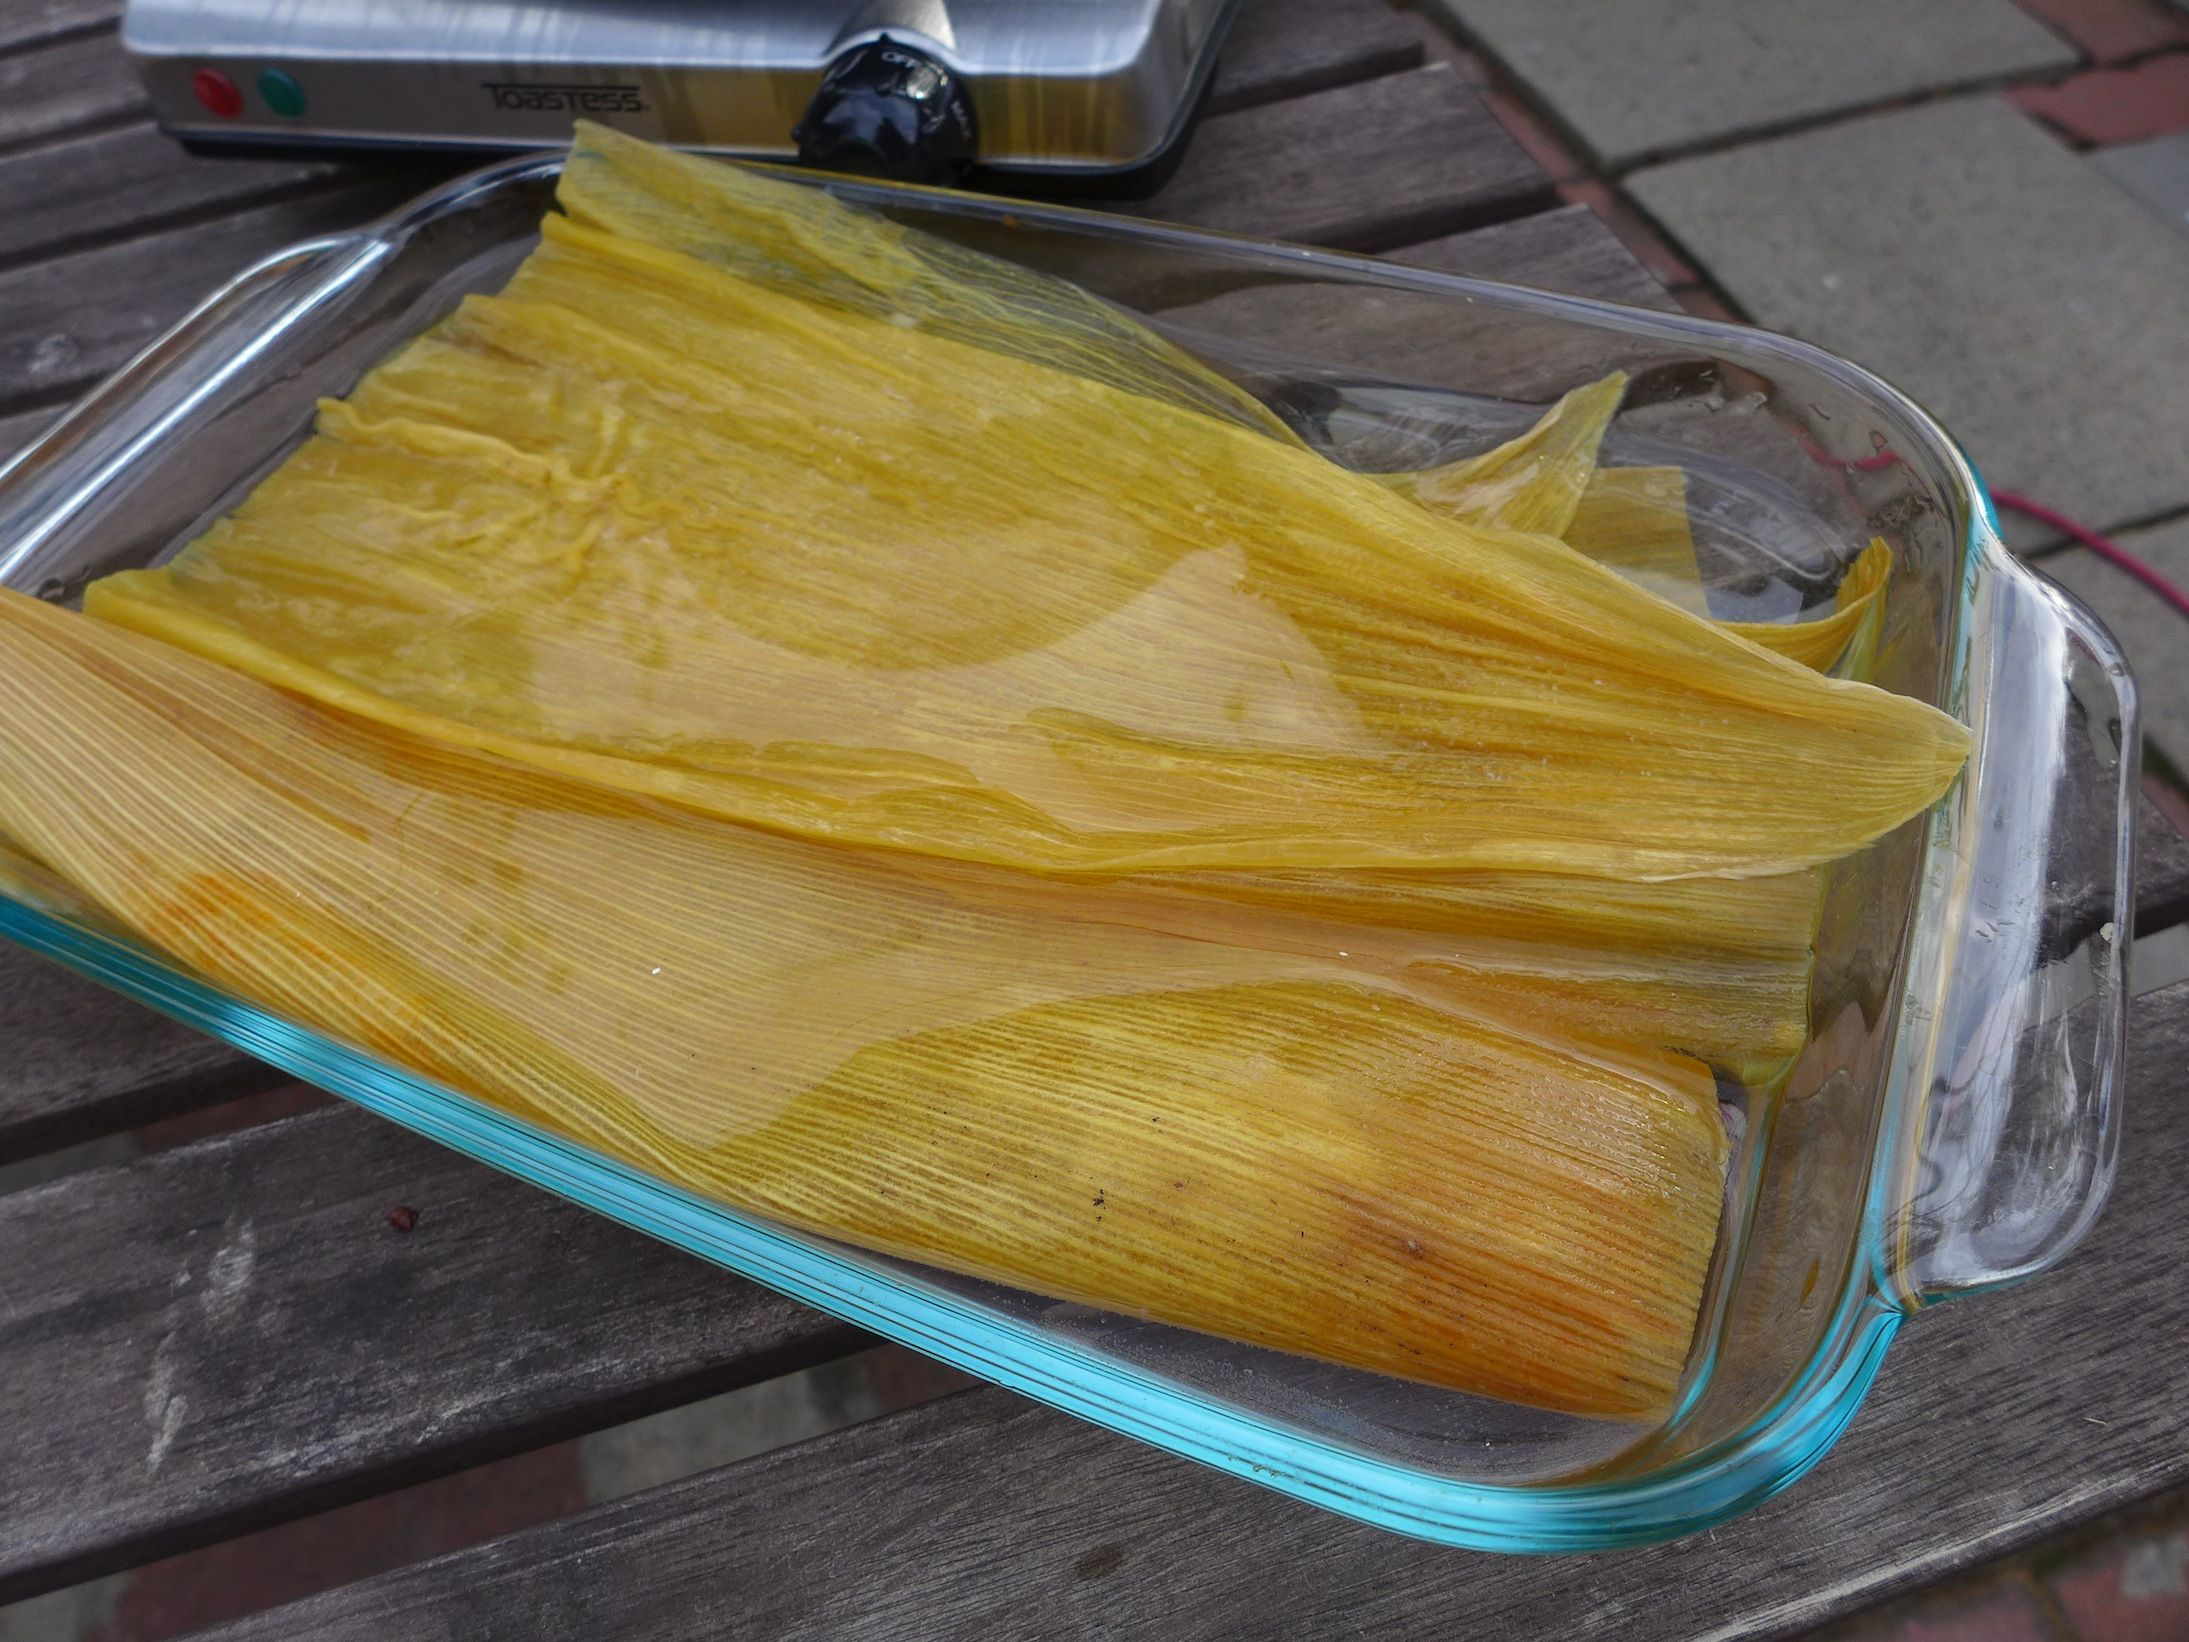 Soak You Corn Husks In Warm Water To Make Them Pliable How To Make Tamales Steamed Dumplings Holiday Treats